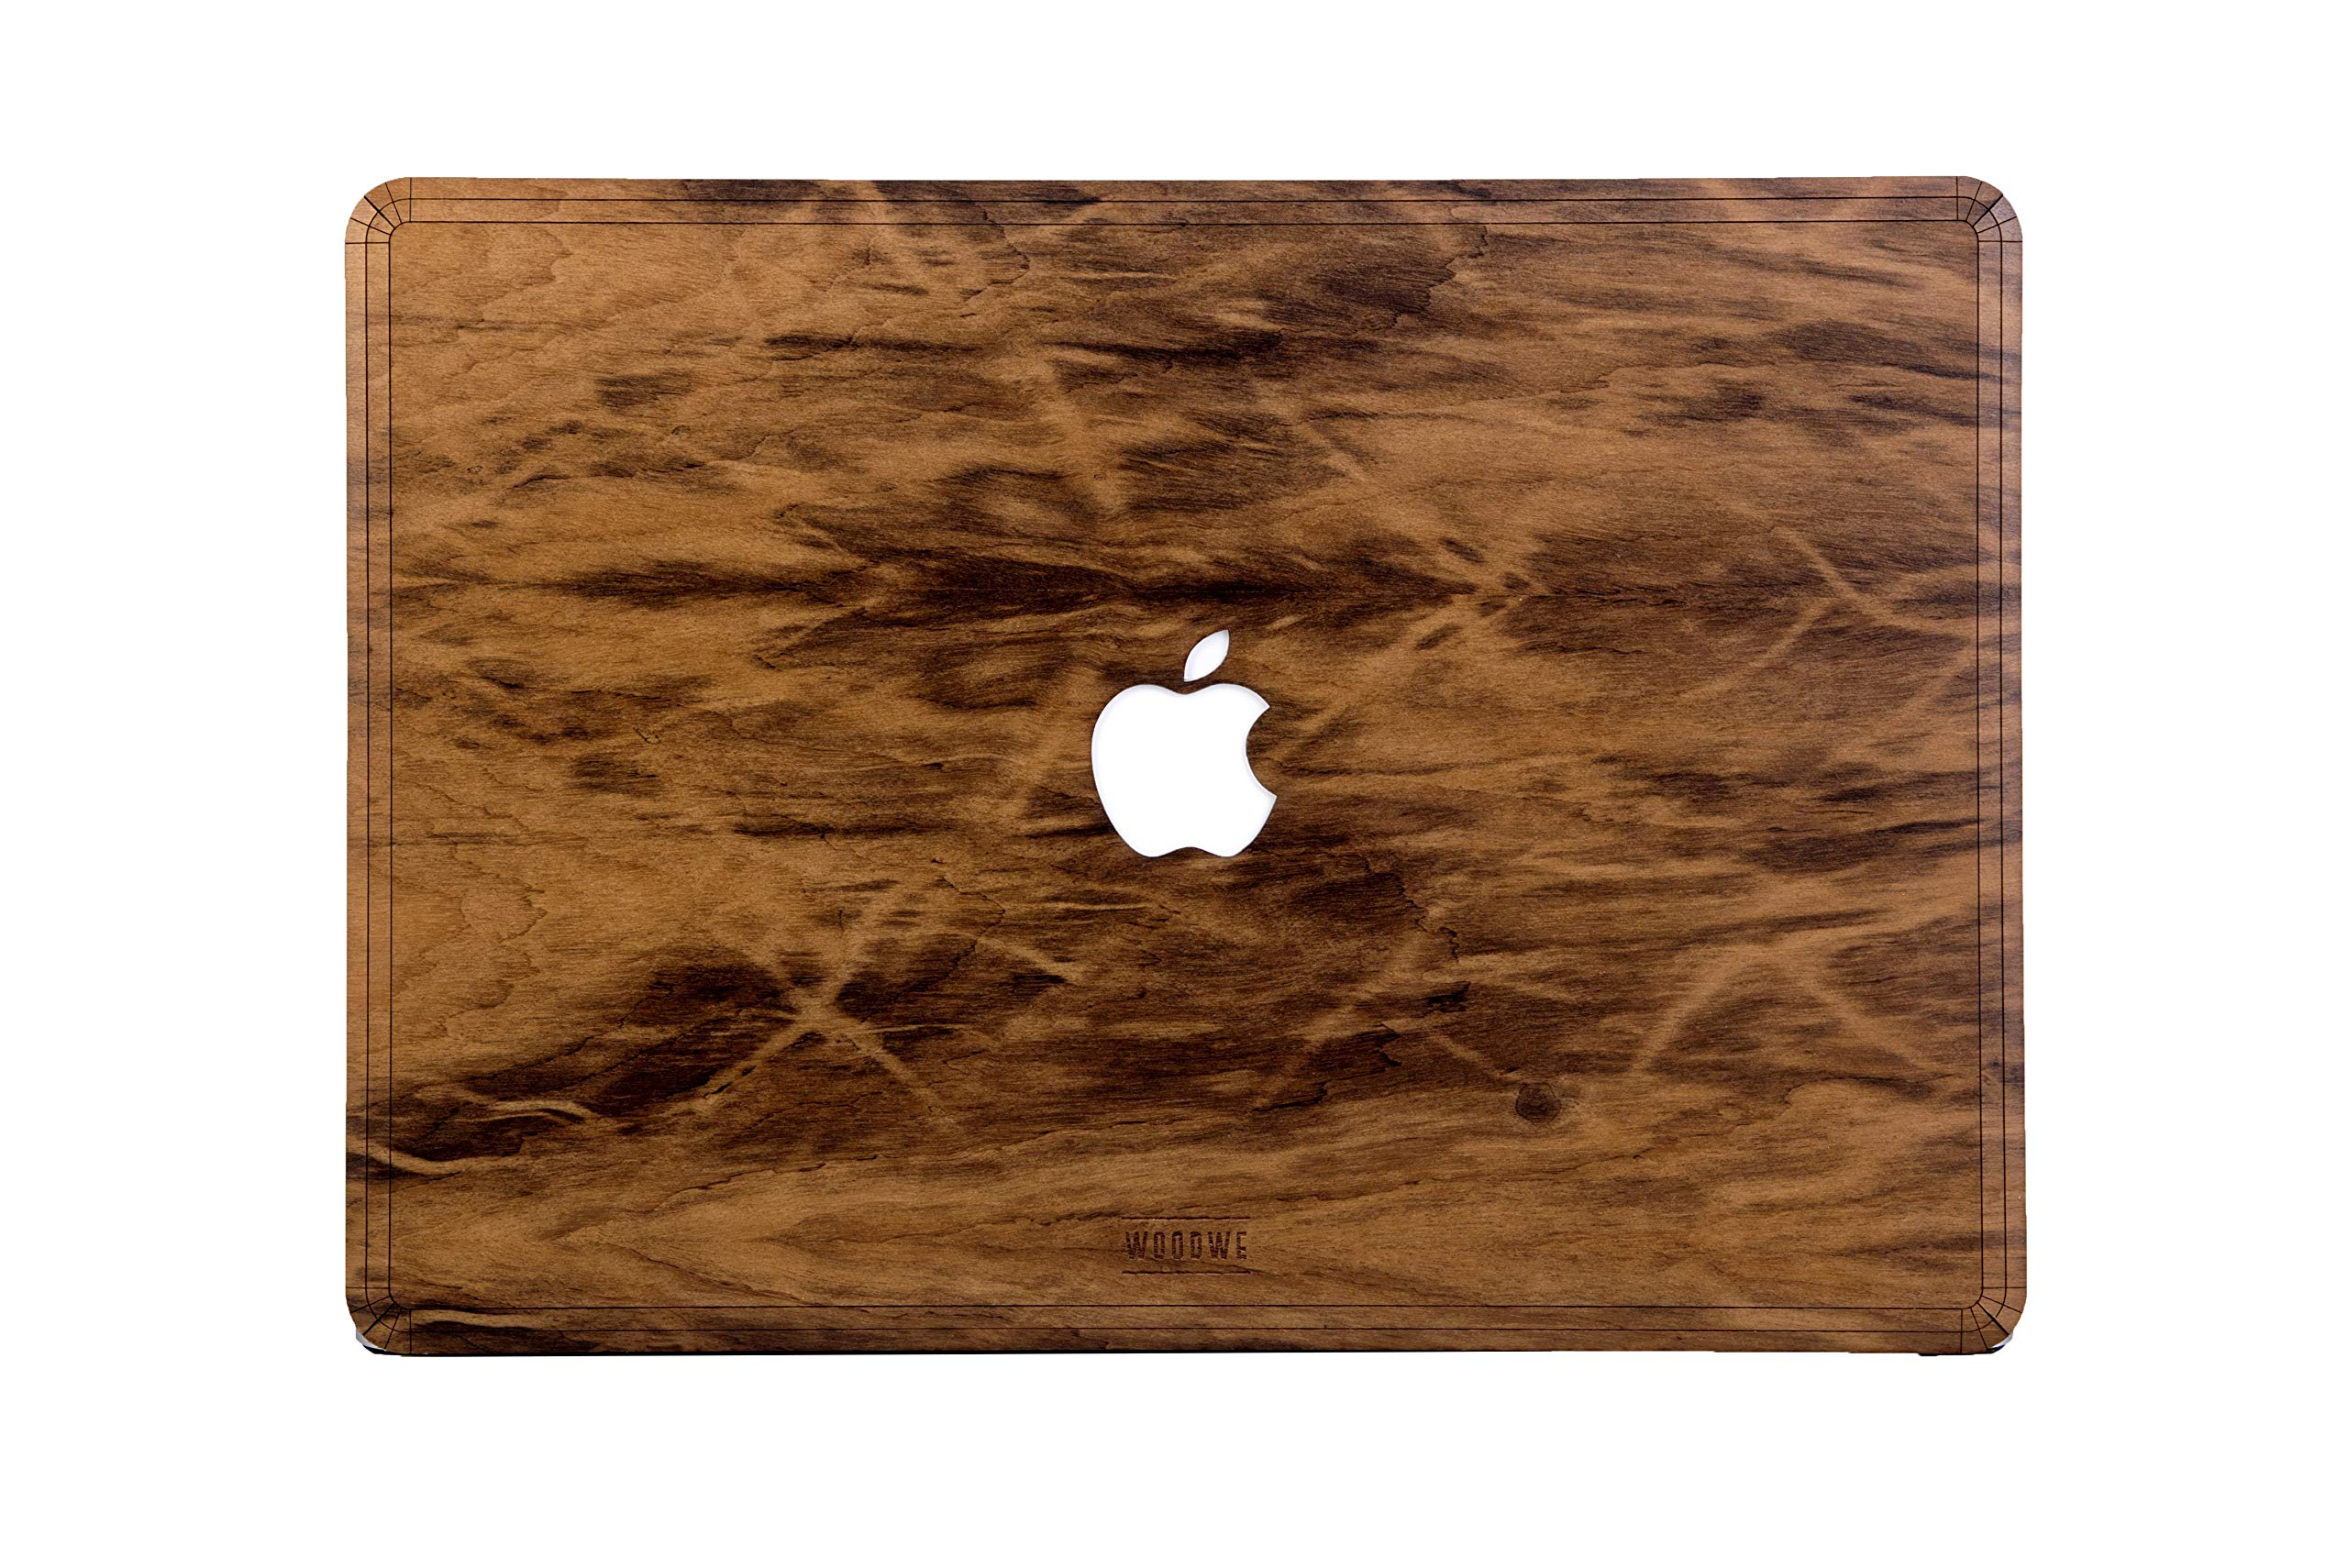 WOODWE Real Wood MacBook Case Cover Skin Sticker Decal for Mac pro 15 inch Retina Display | Model: A1398; Mid 2012 – Mid 2015 | Genuine & Natural IMBUIA Wood | TOP&Bottom Cover by WOODWE (Image #1)